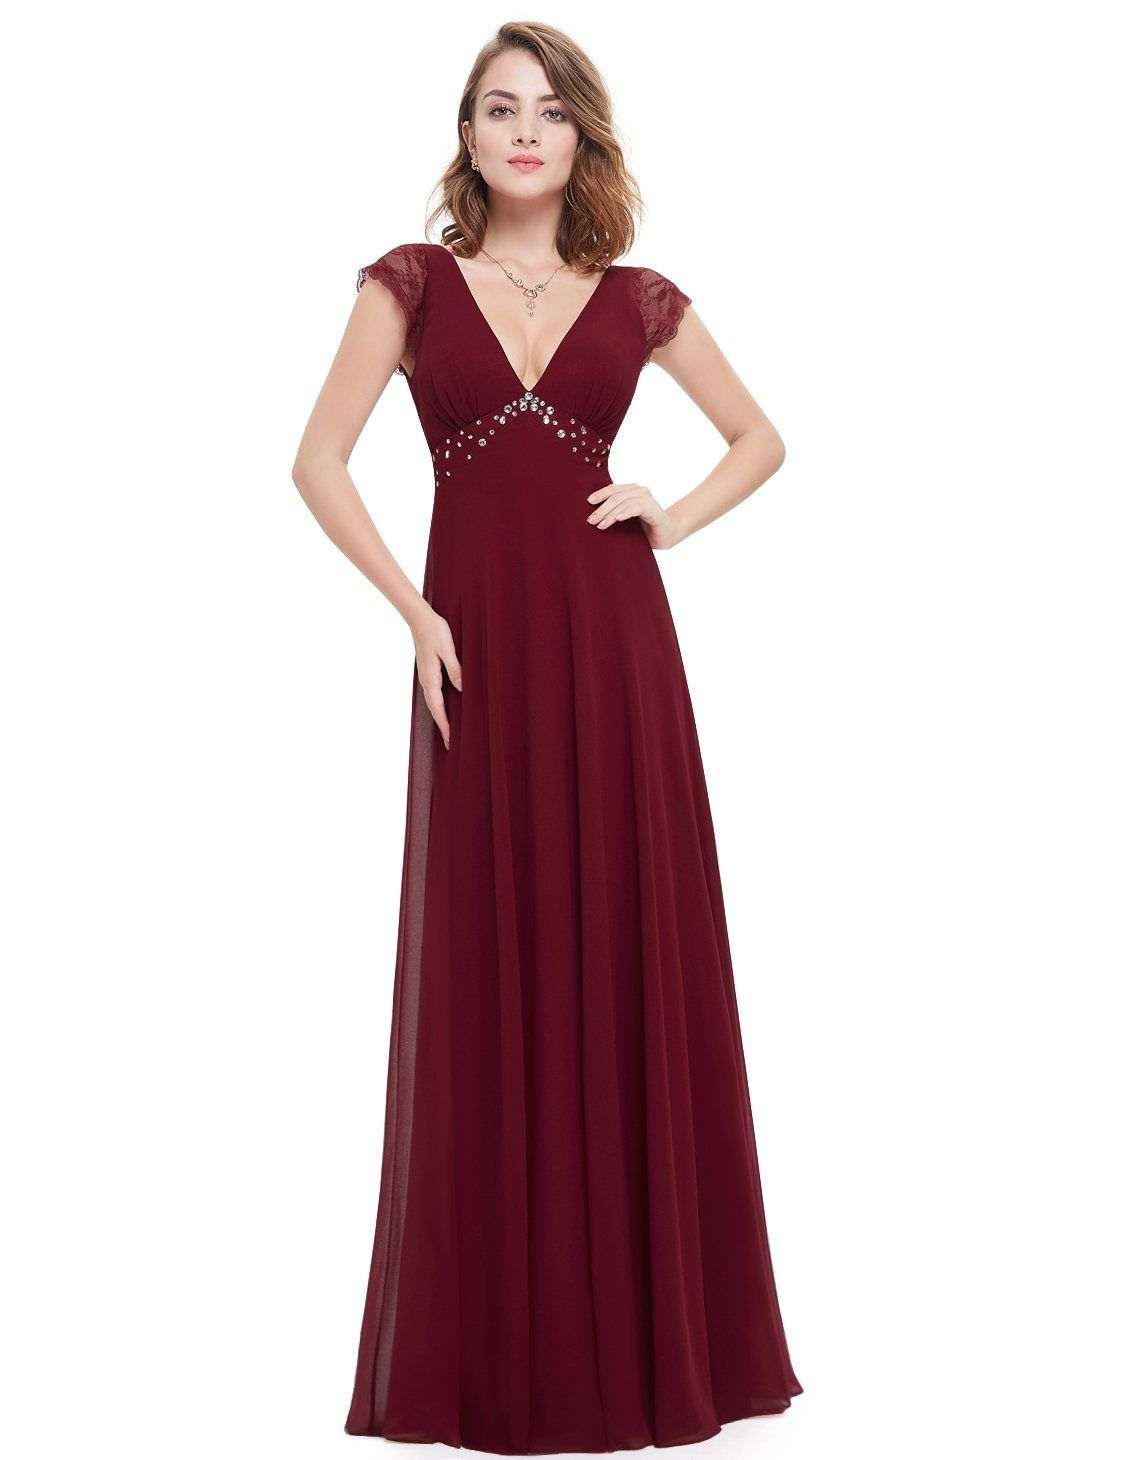 80b05a75a8 Ever Pretty Size 16 Ladies Maxi Party Dresses: Amazon.co.uk: Clothing